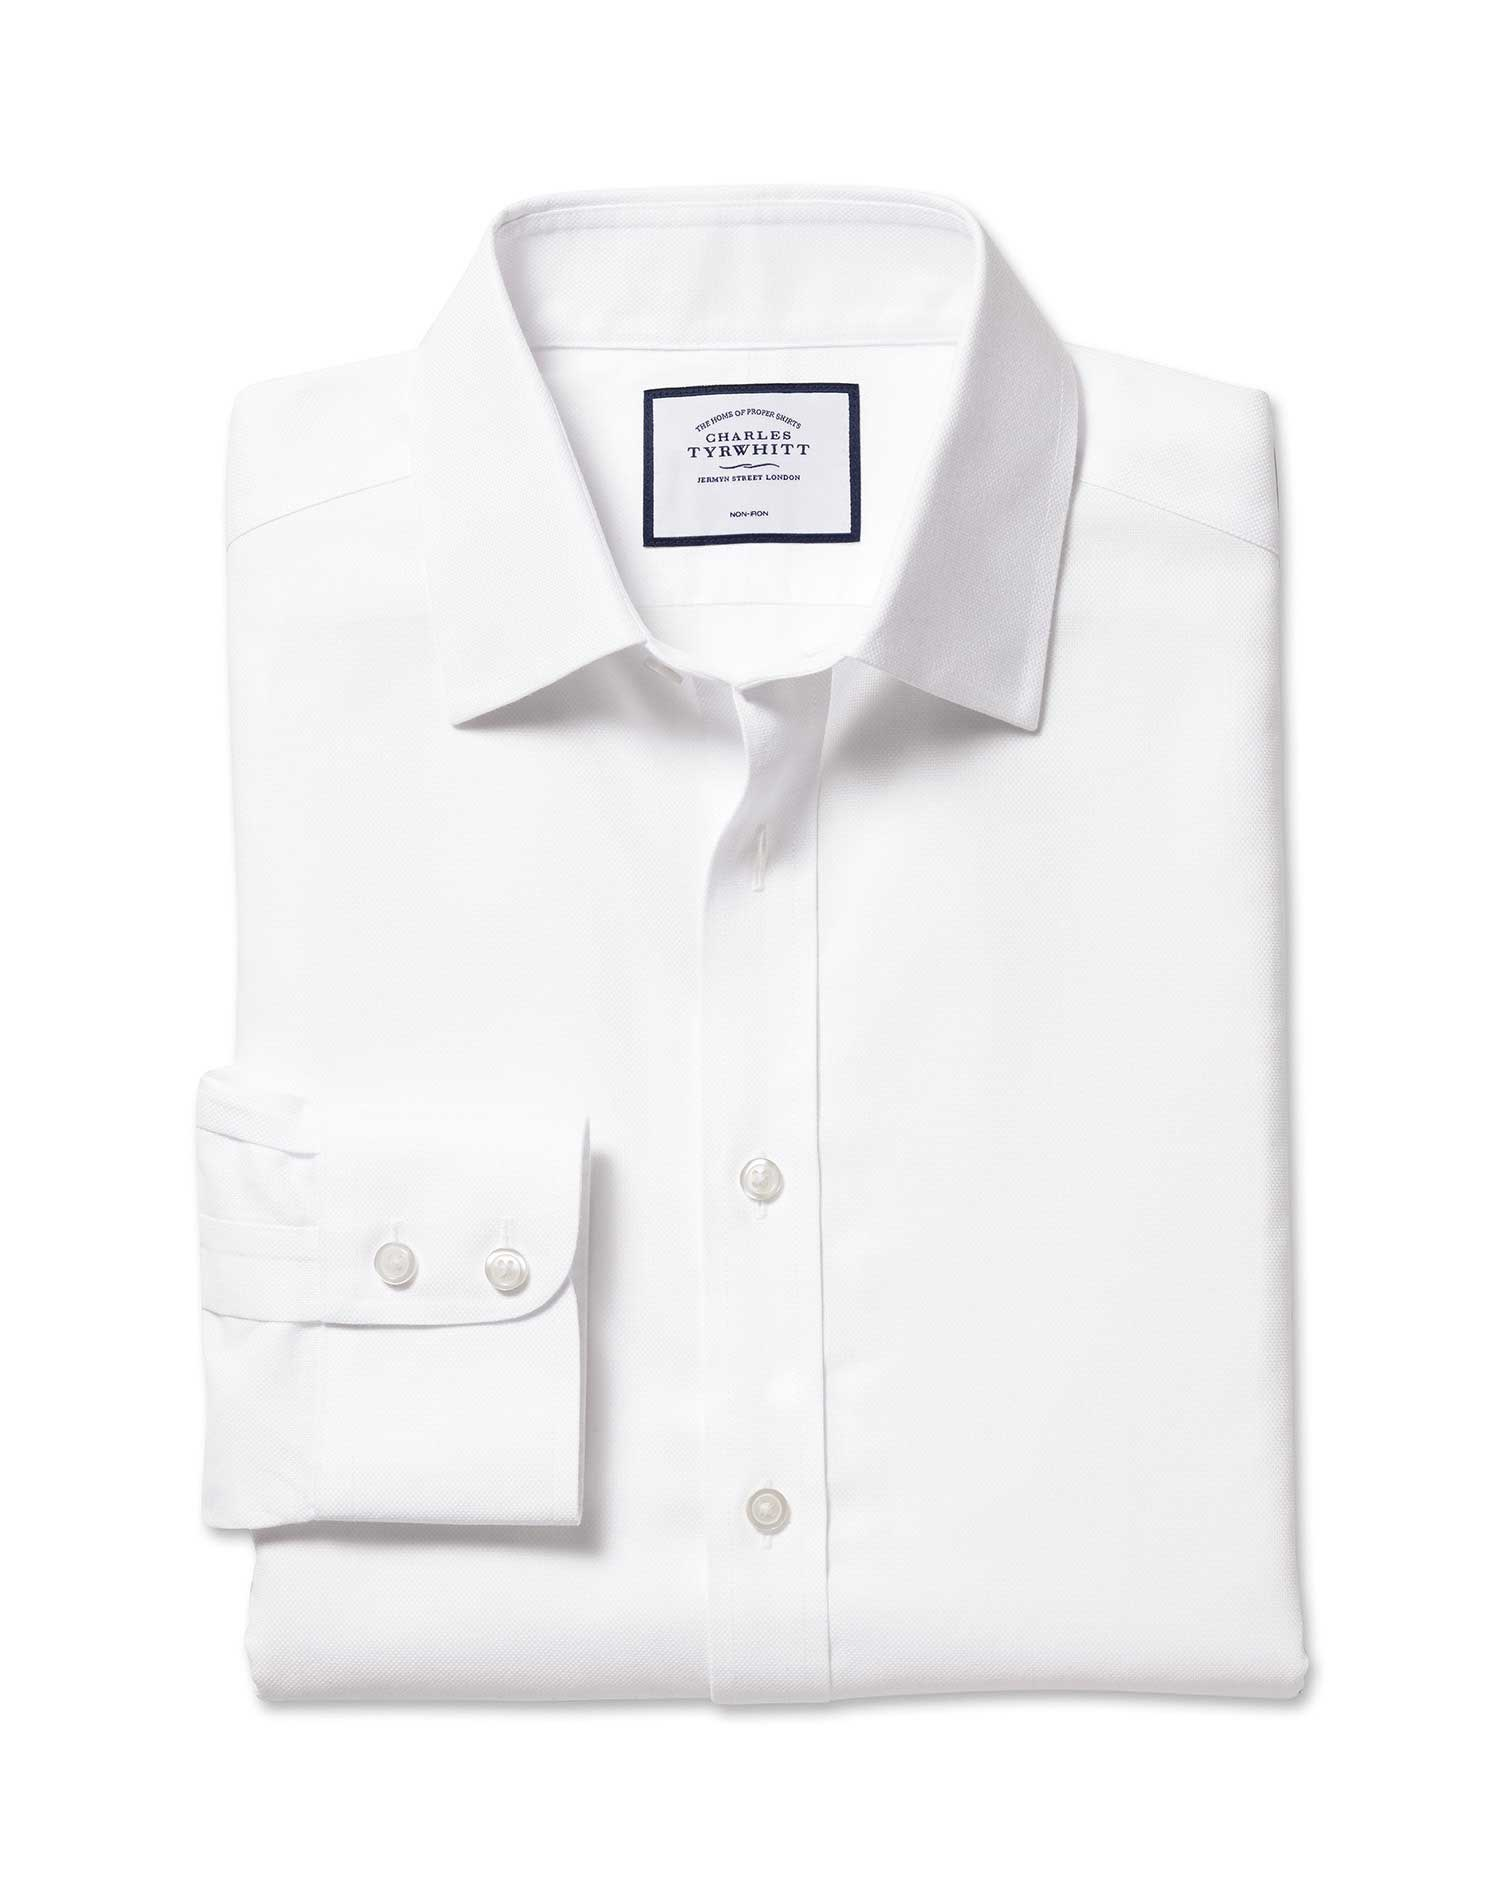 Extra Slim Fit Non-Iron Royal Panama White Cotton Formal Shirt Single Cuff Size 15.5/36 by Charles Tyrwhitt from Charles Tyrwhitt